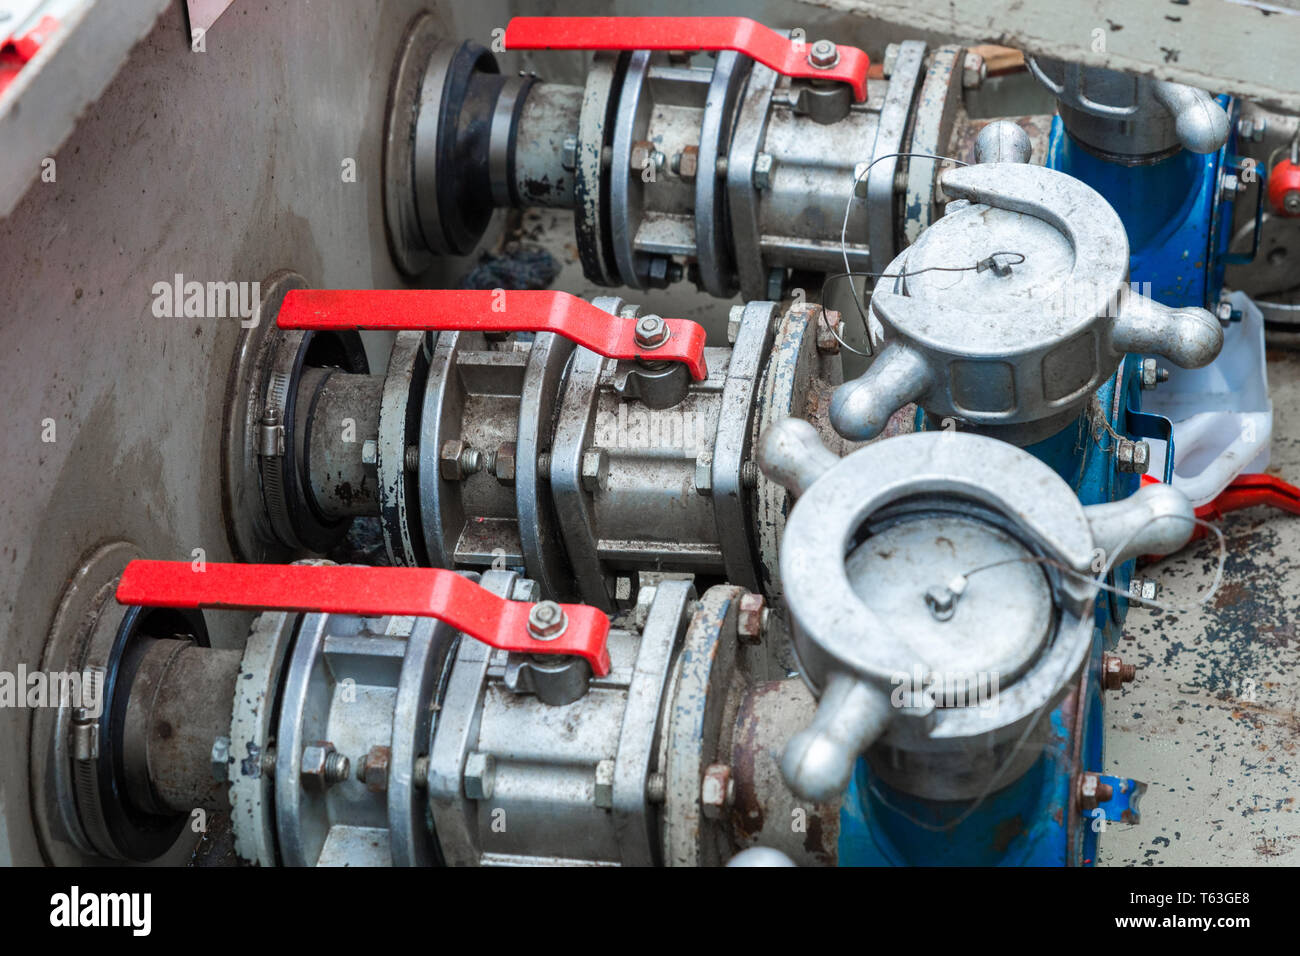 The gate valves at the fuel station - Stock Image